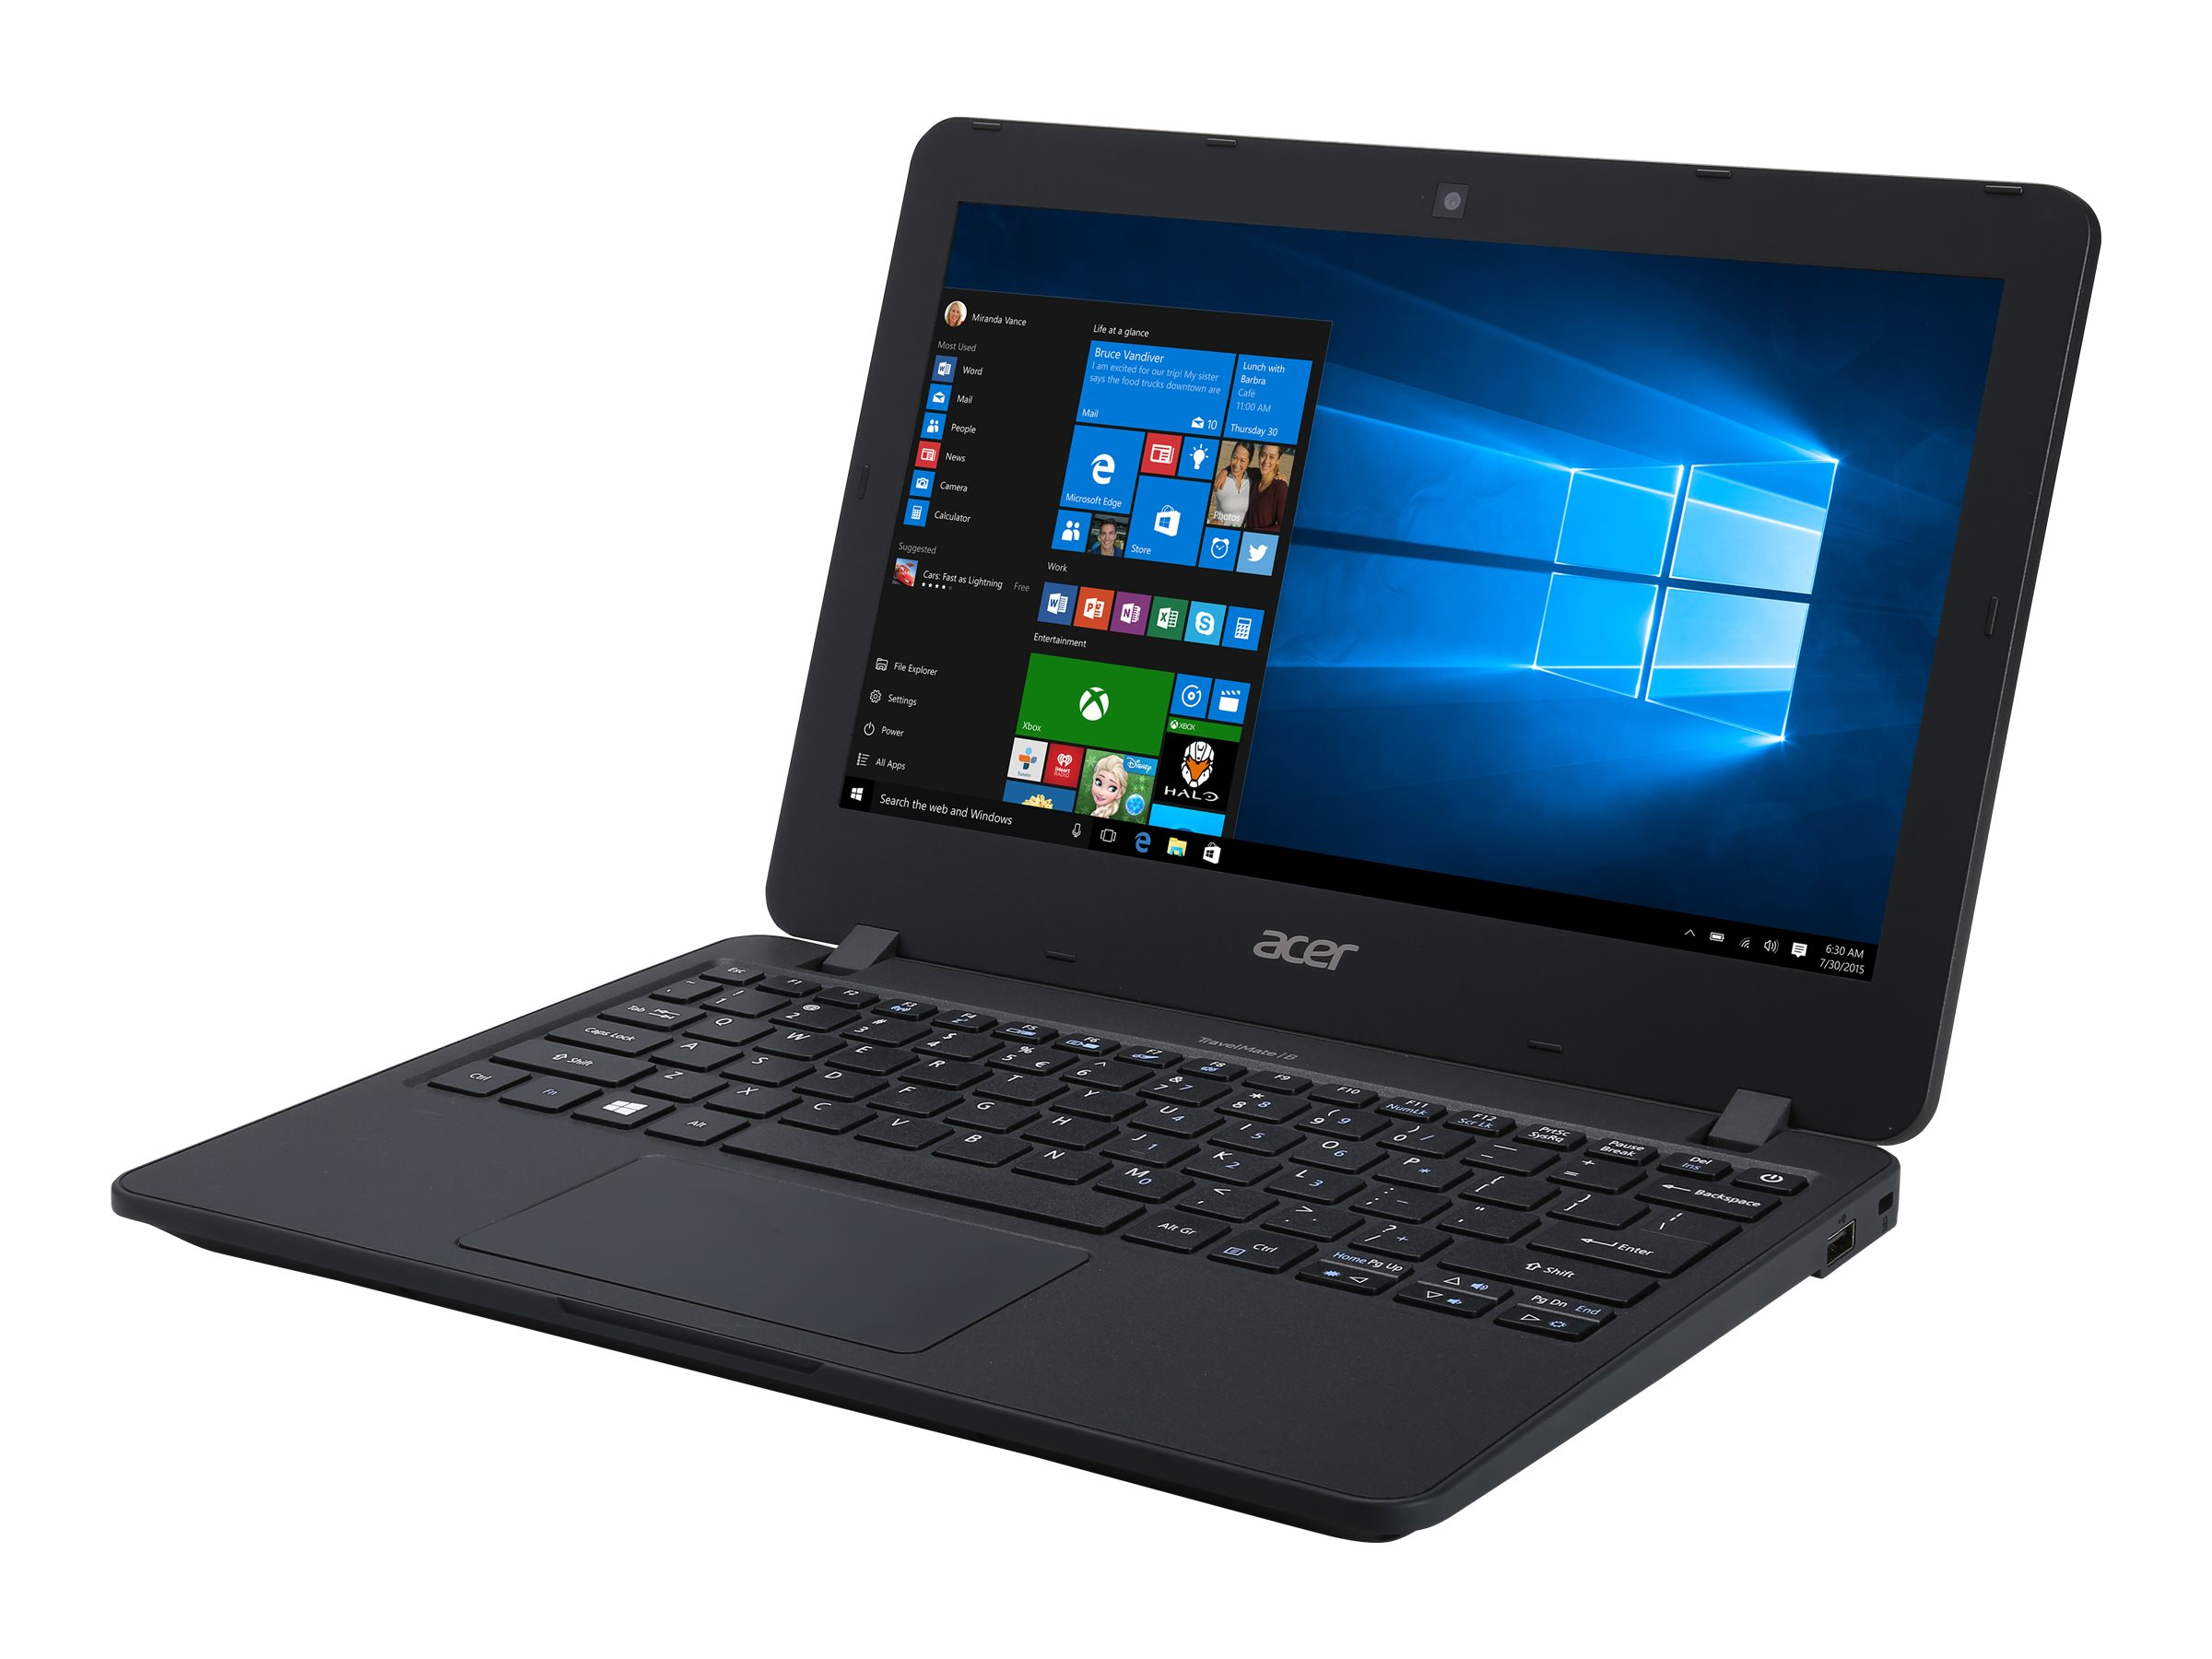 Acer Shape the Future TravelMate B117-MP-C2G3 Celeron N3060 1.6GHz 4GB 32GB ac BT 11.6 HD MT W10P64, NX.VCXAA.002